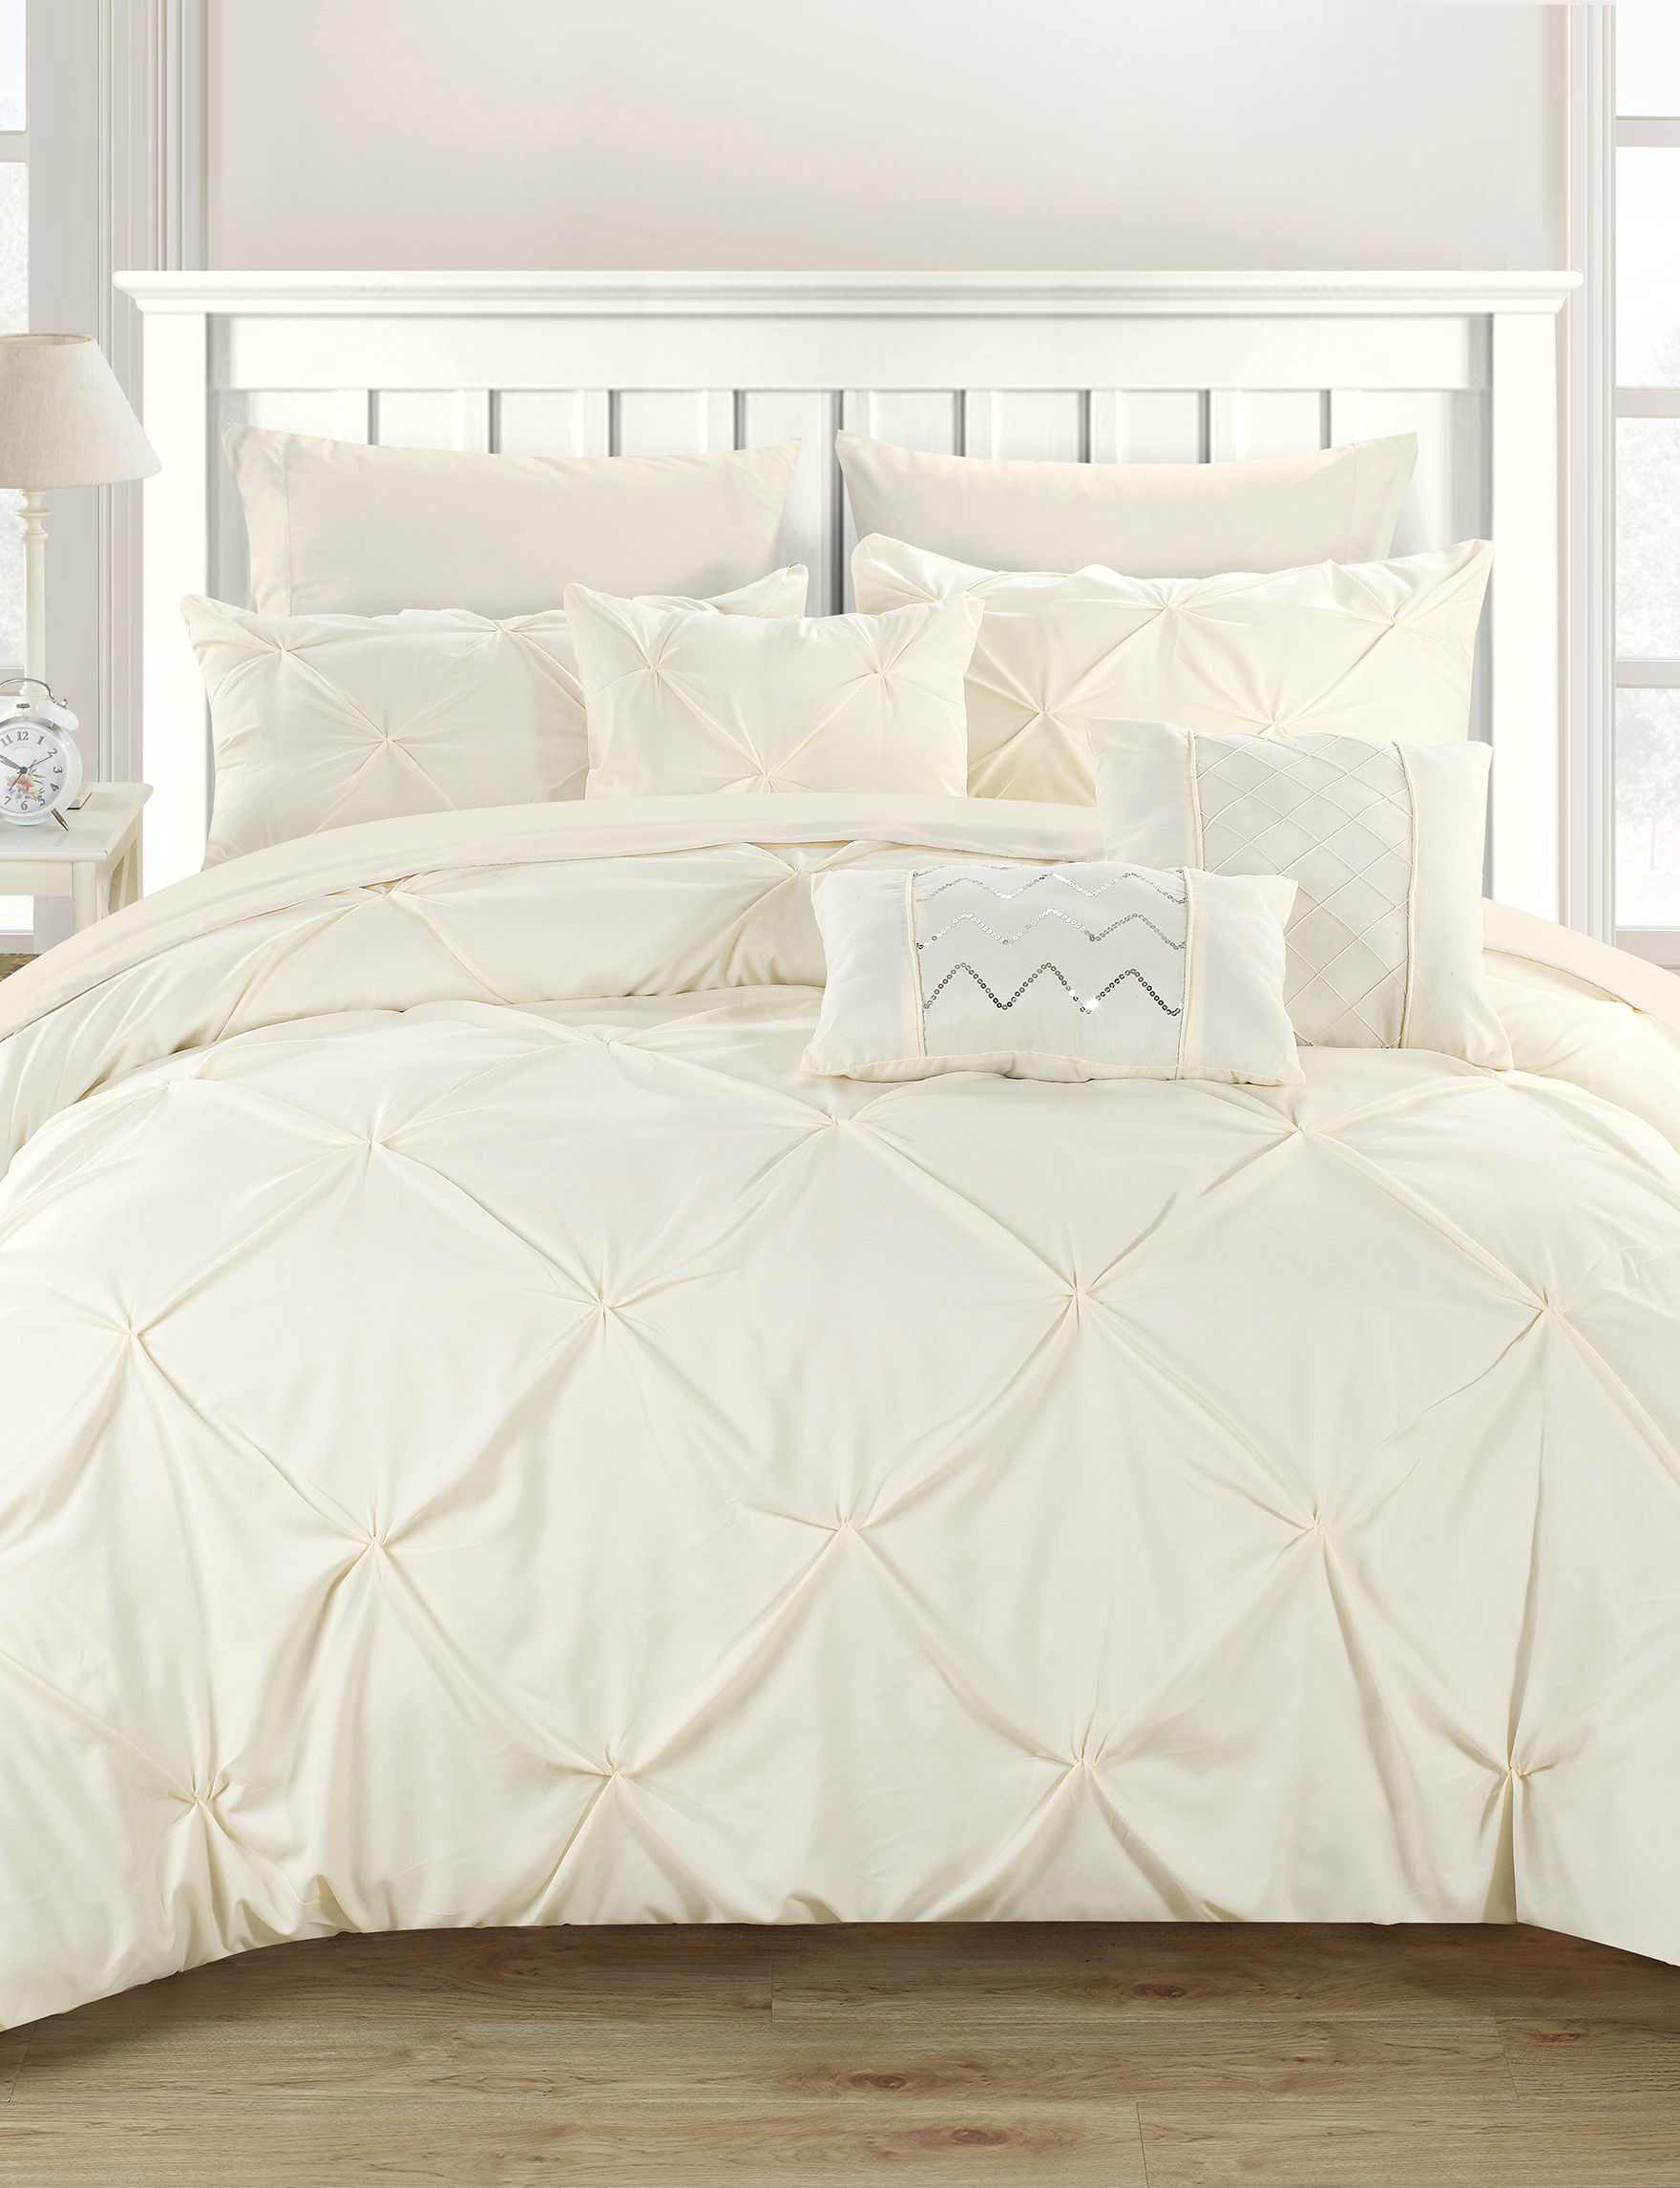 Chic Home Design Hannah Comforter Set - CLOSEOUT! | Stage Stores